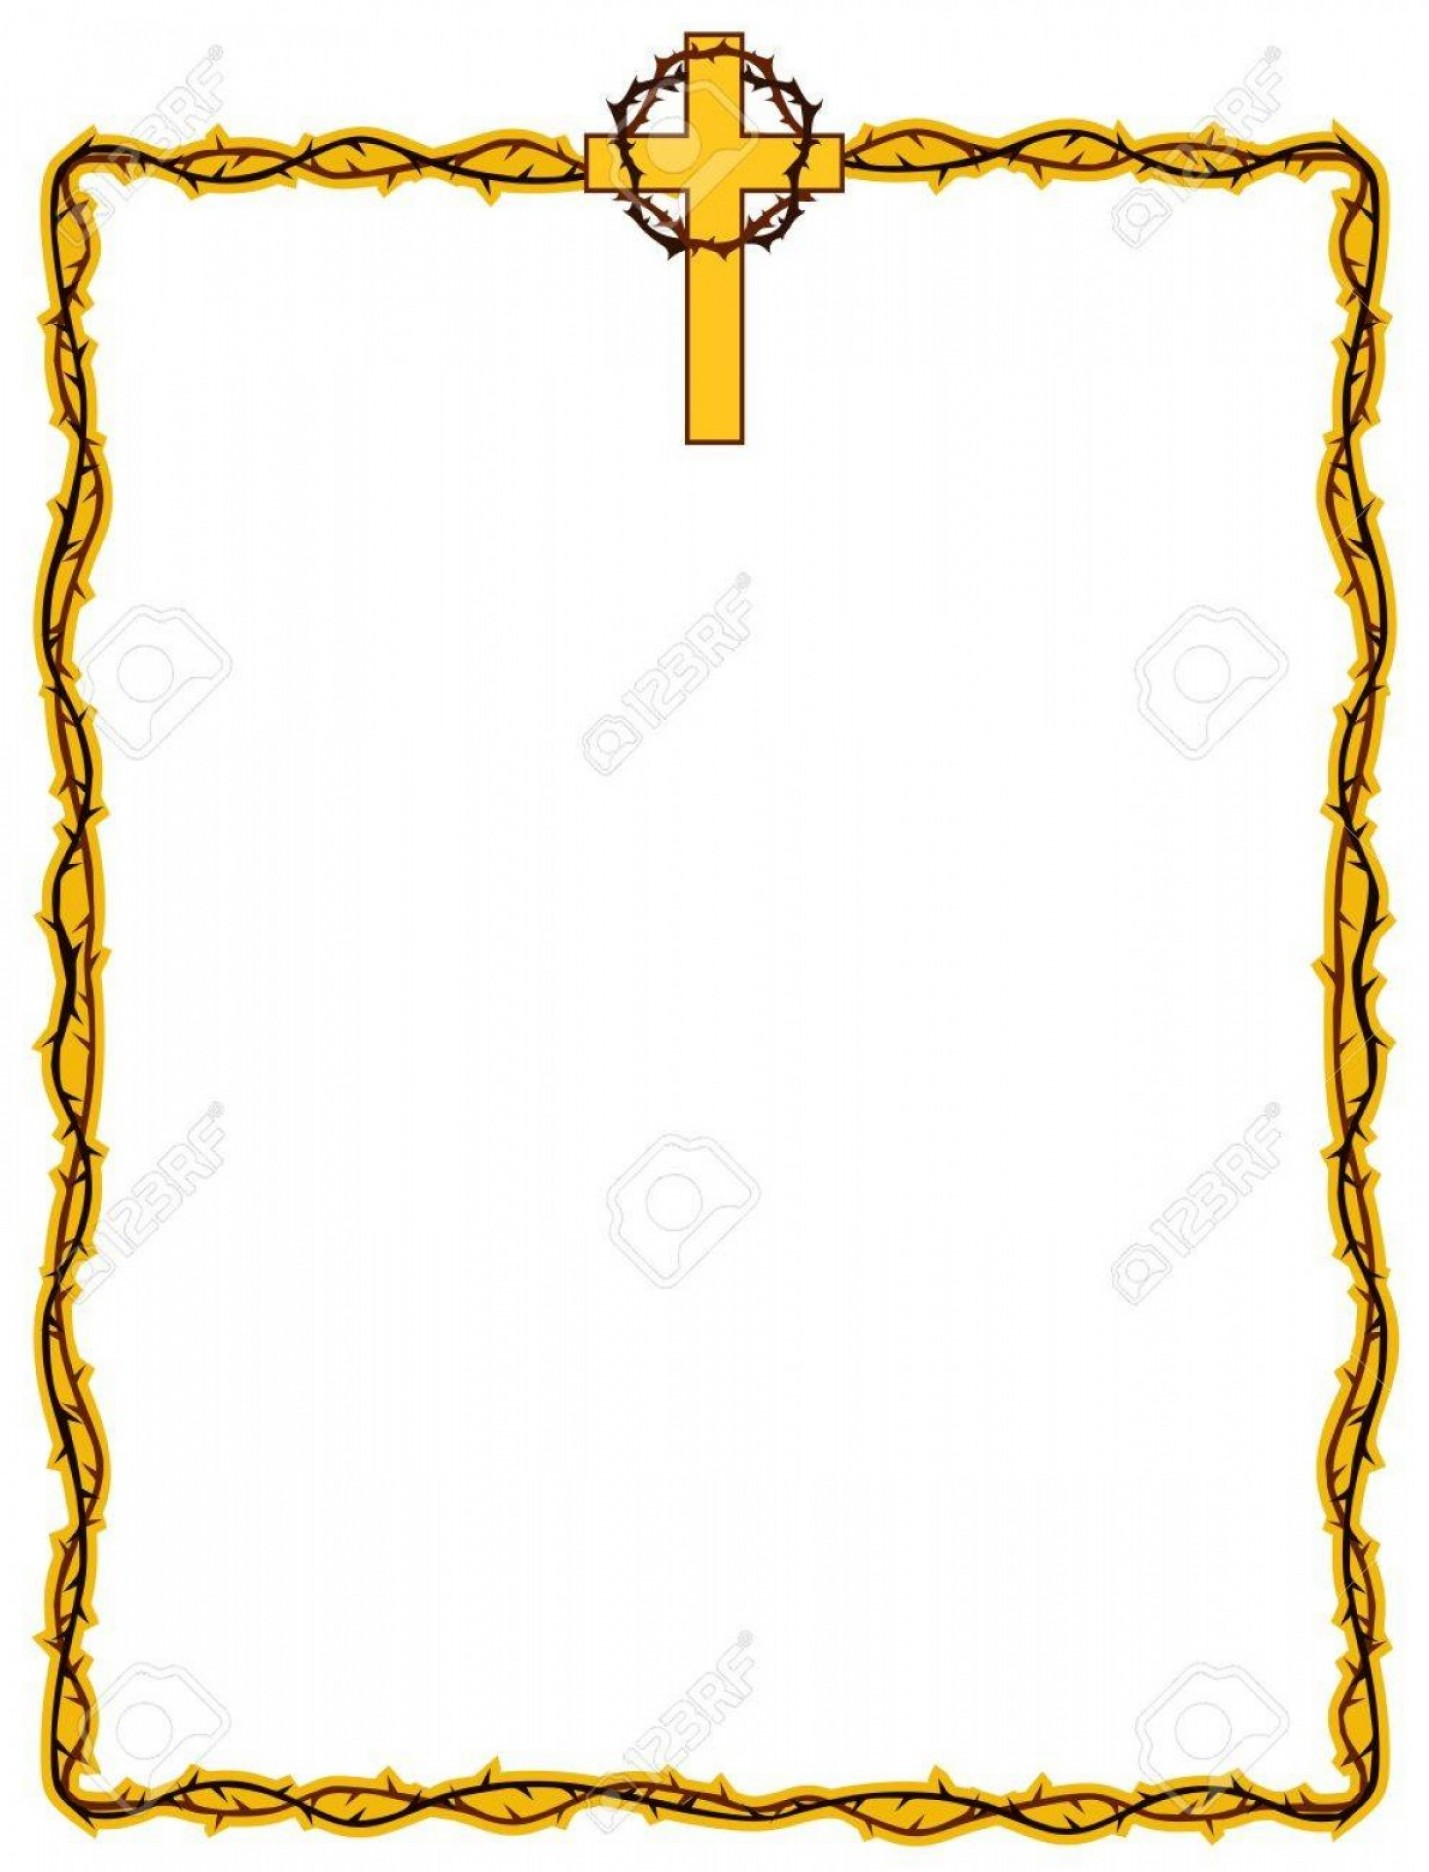 Christian Vector Borders: Photostock Vector Christian Frame Design With Cross And Crown Of Thorns